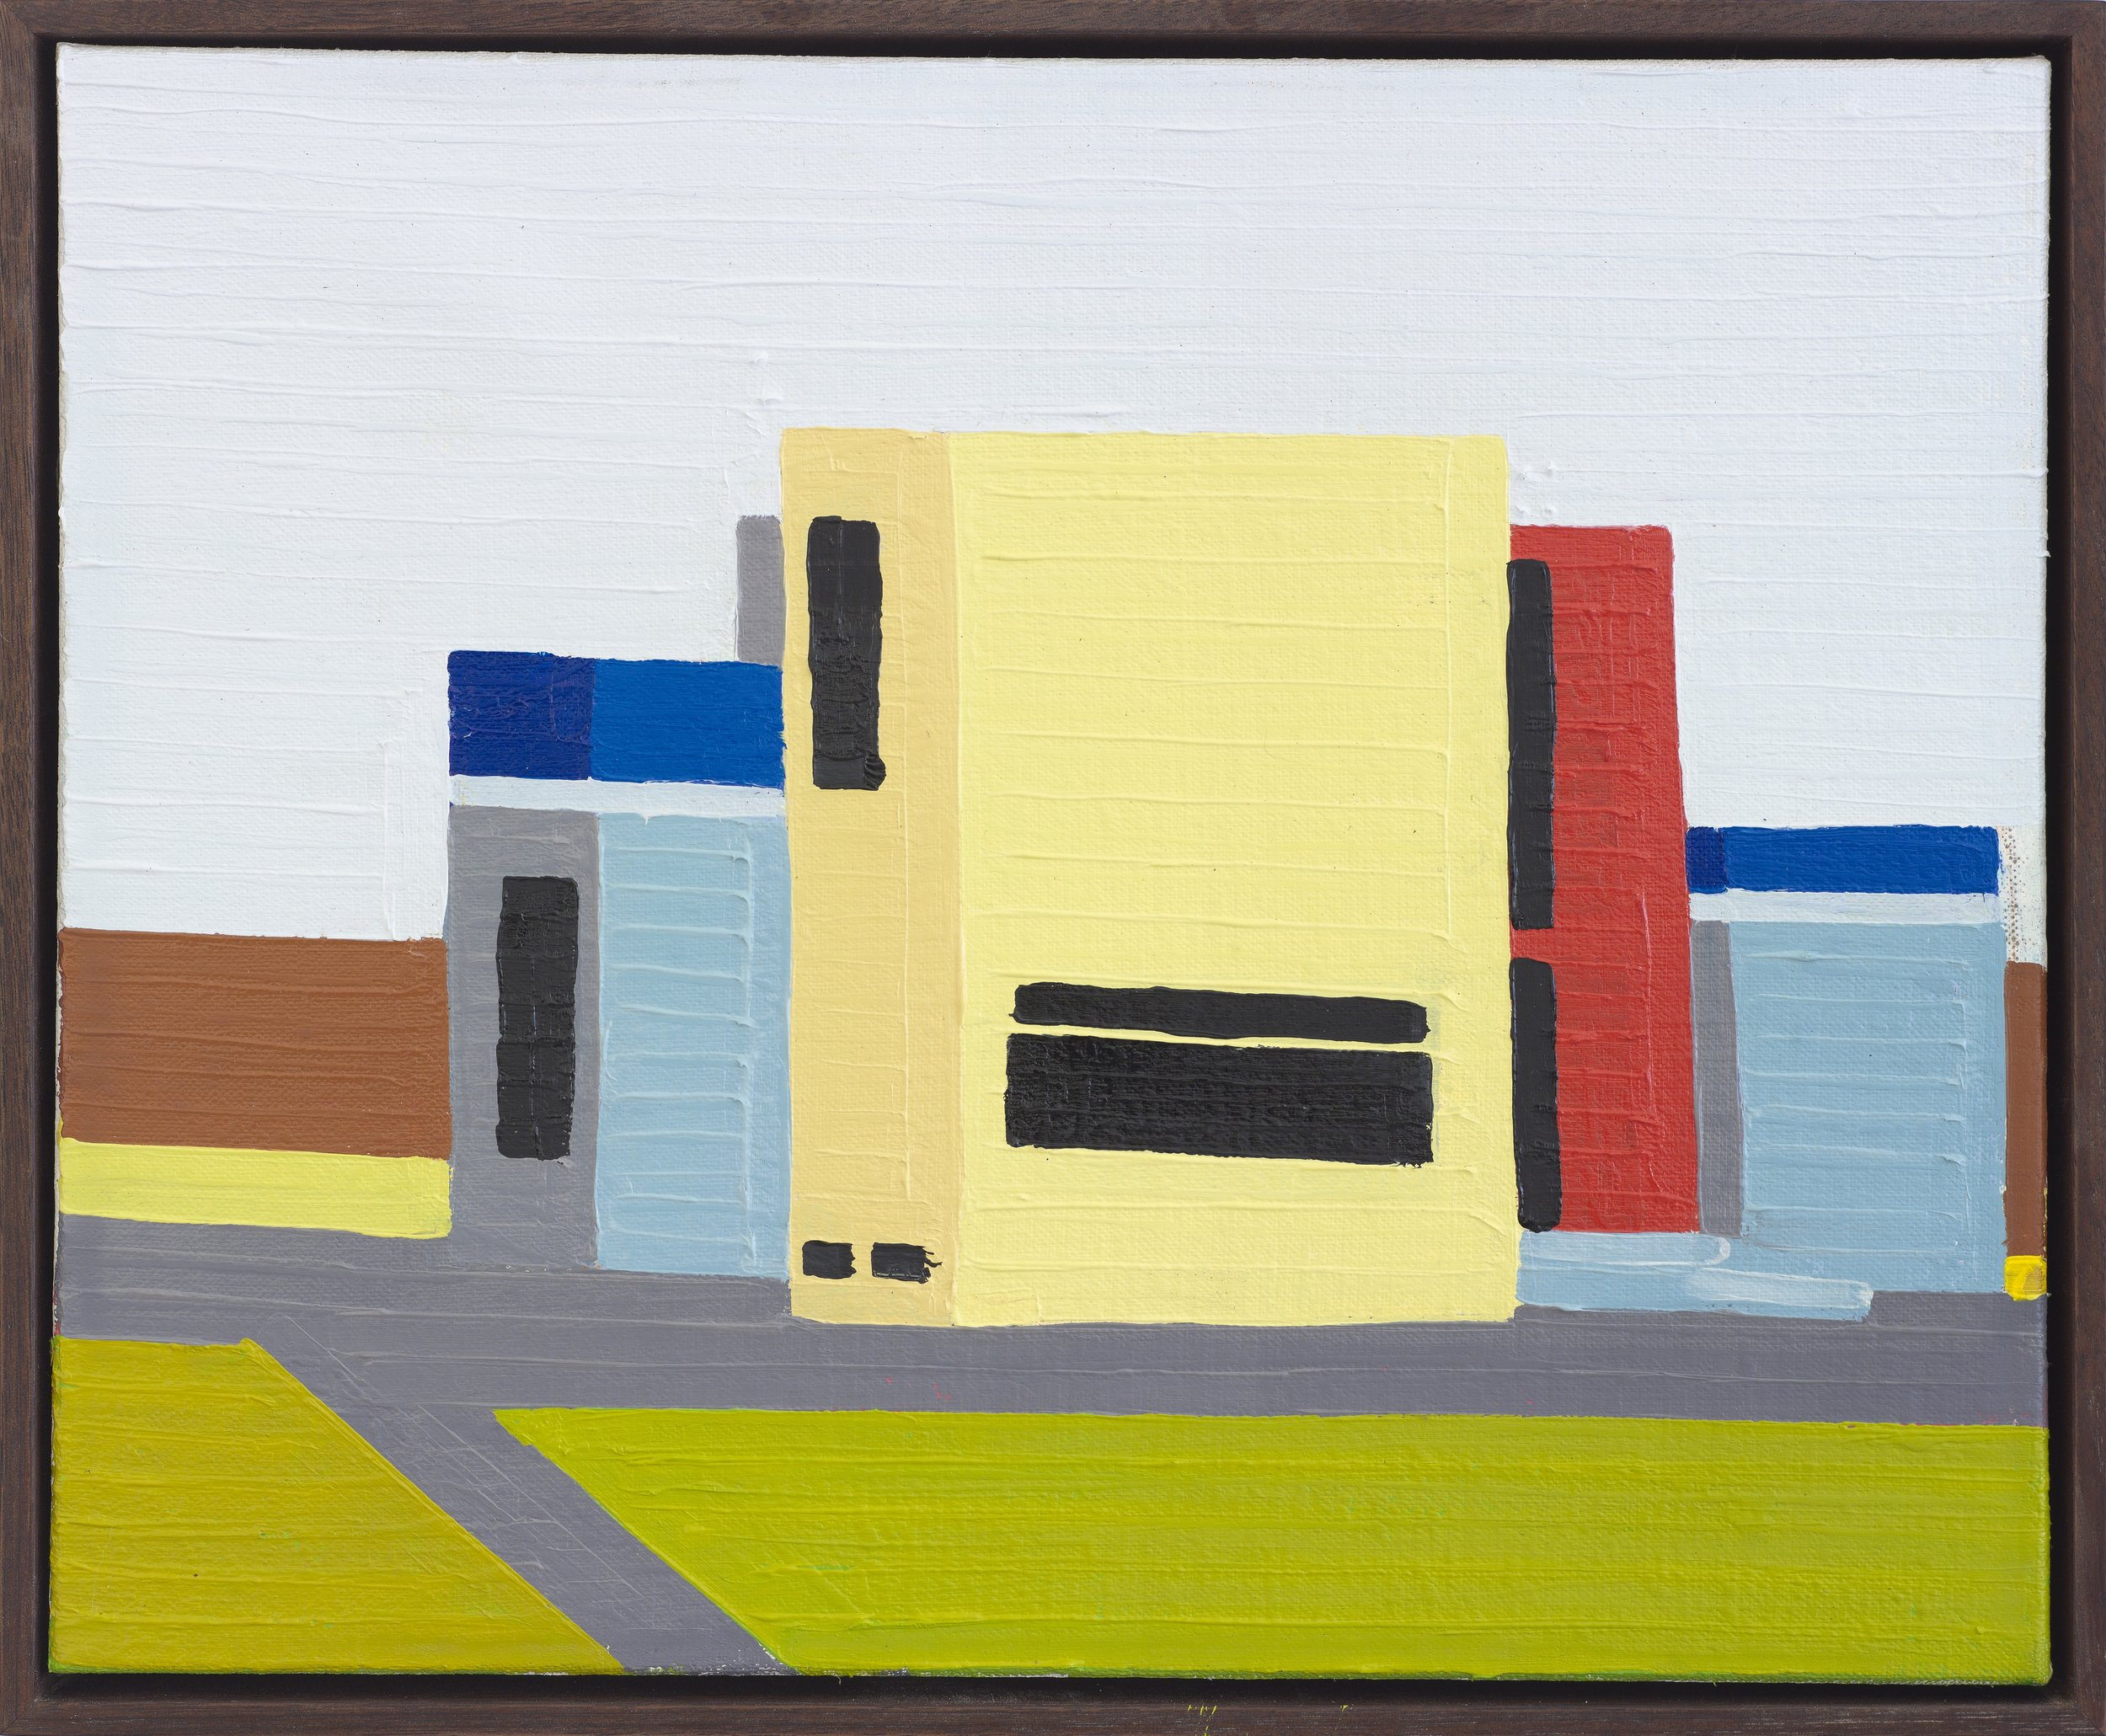 Guy Yanai, Single Family House, 2015 oil on linen 37 x 30 cm - 14 5/8 x 11 3/4 inches